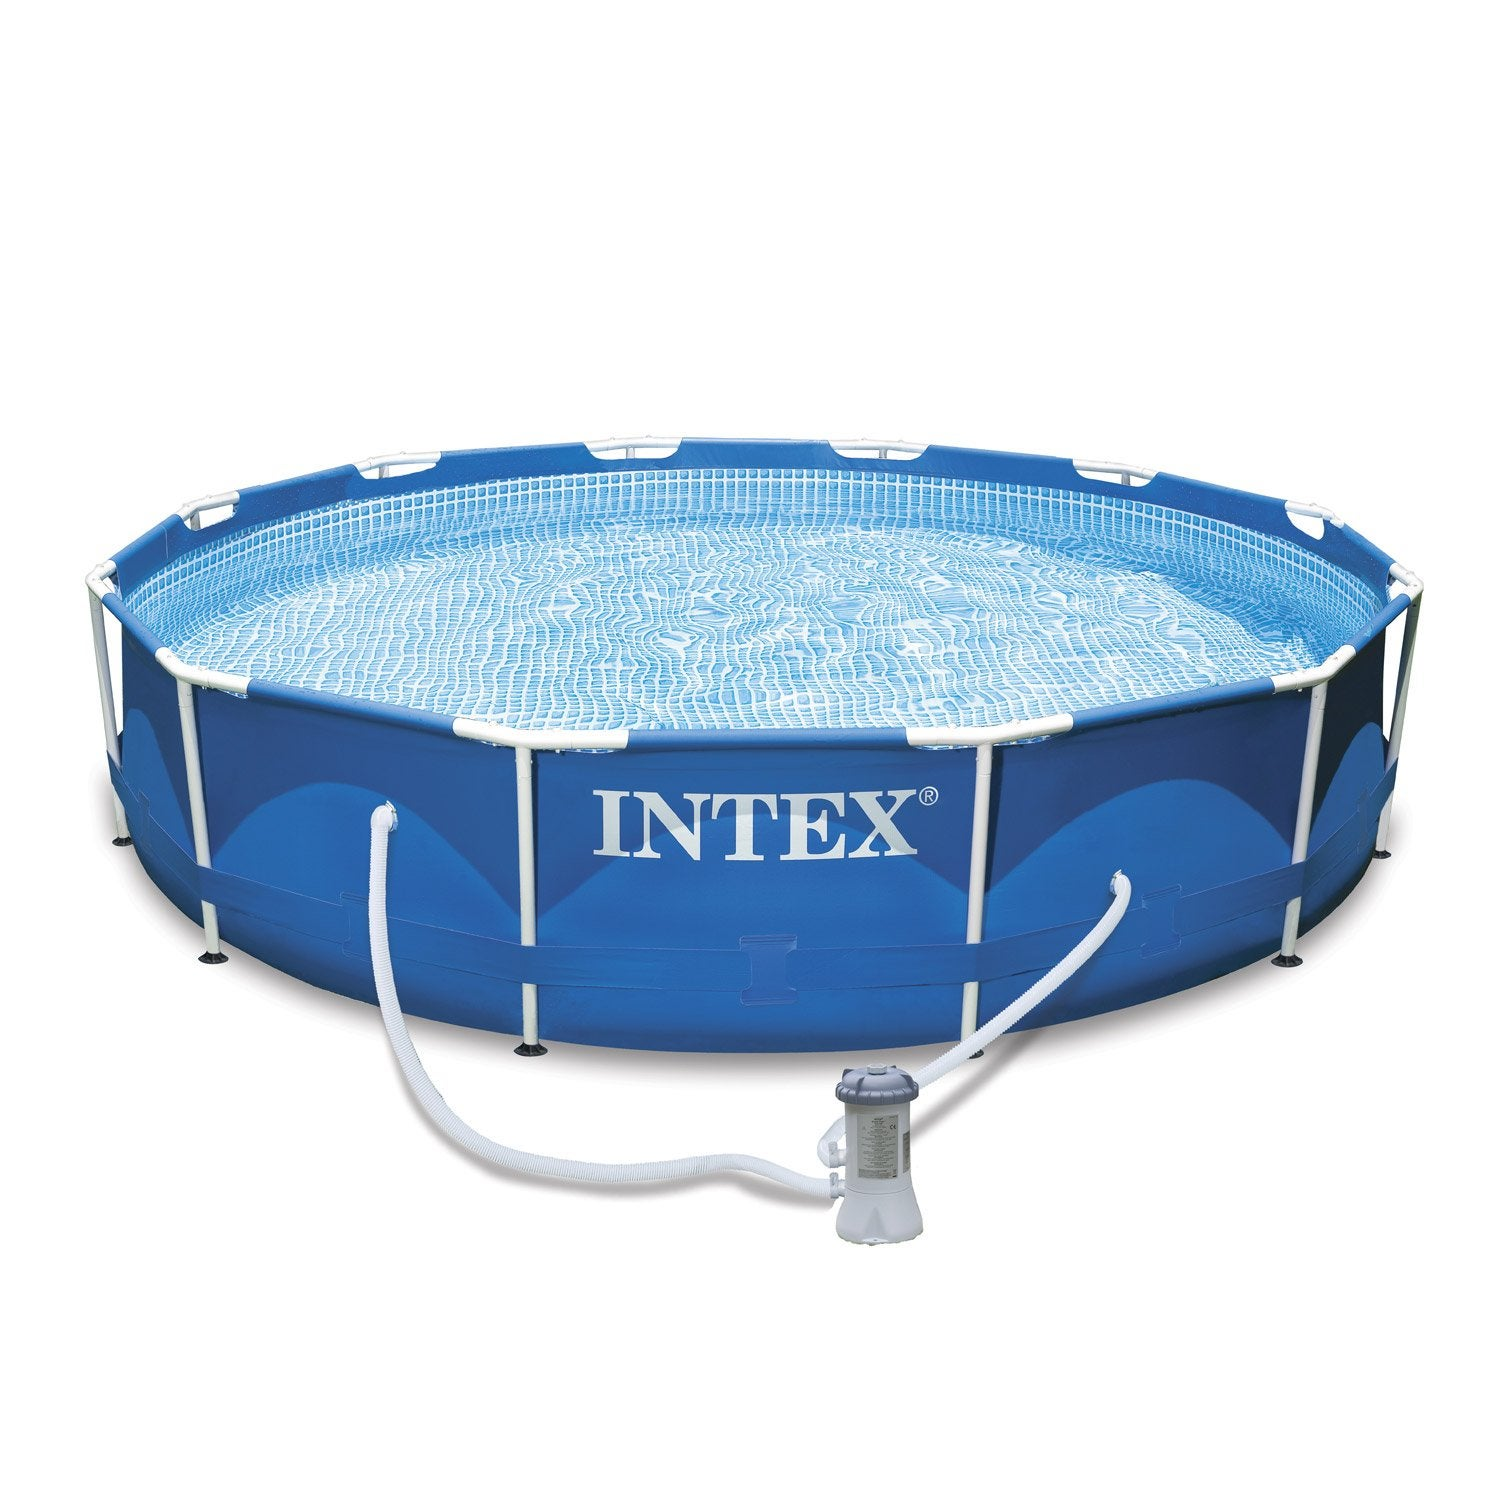 Piscine intex for Piscine hors sol intex pas cher